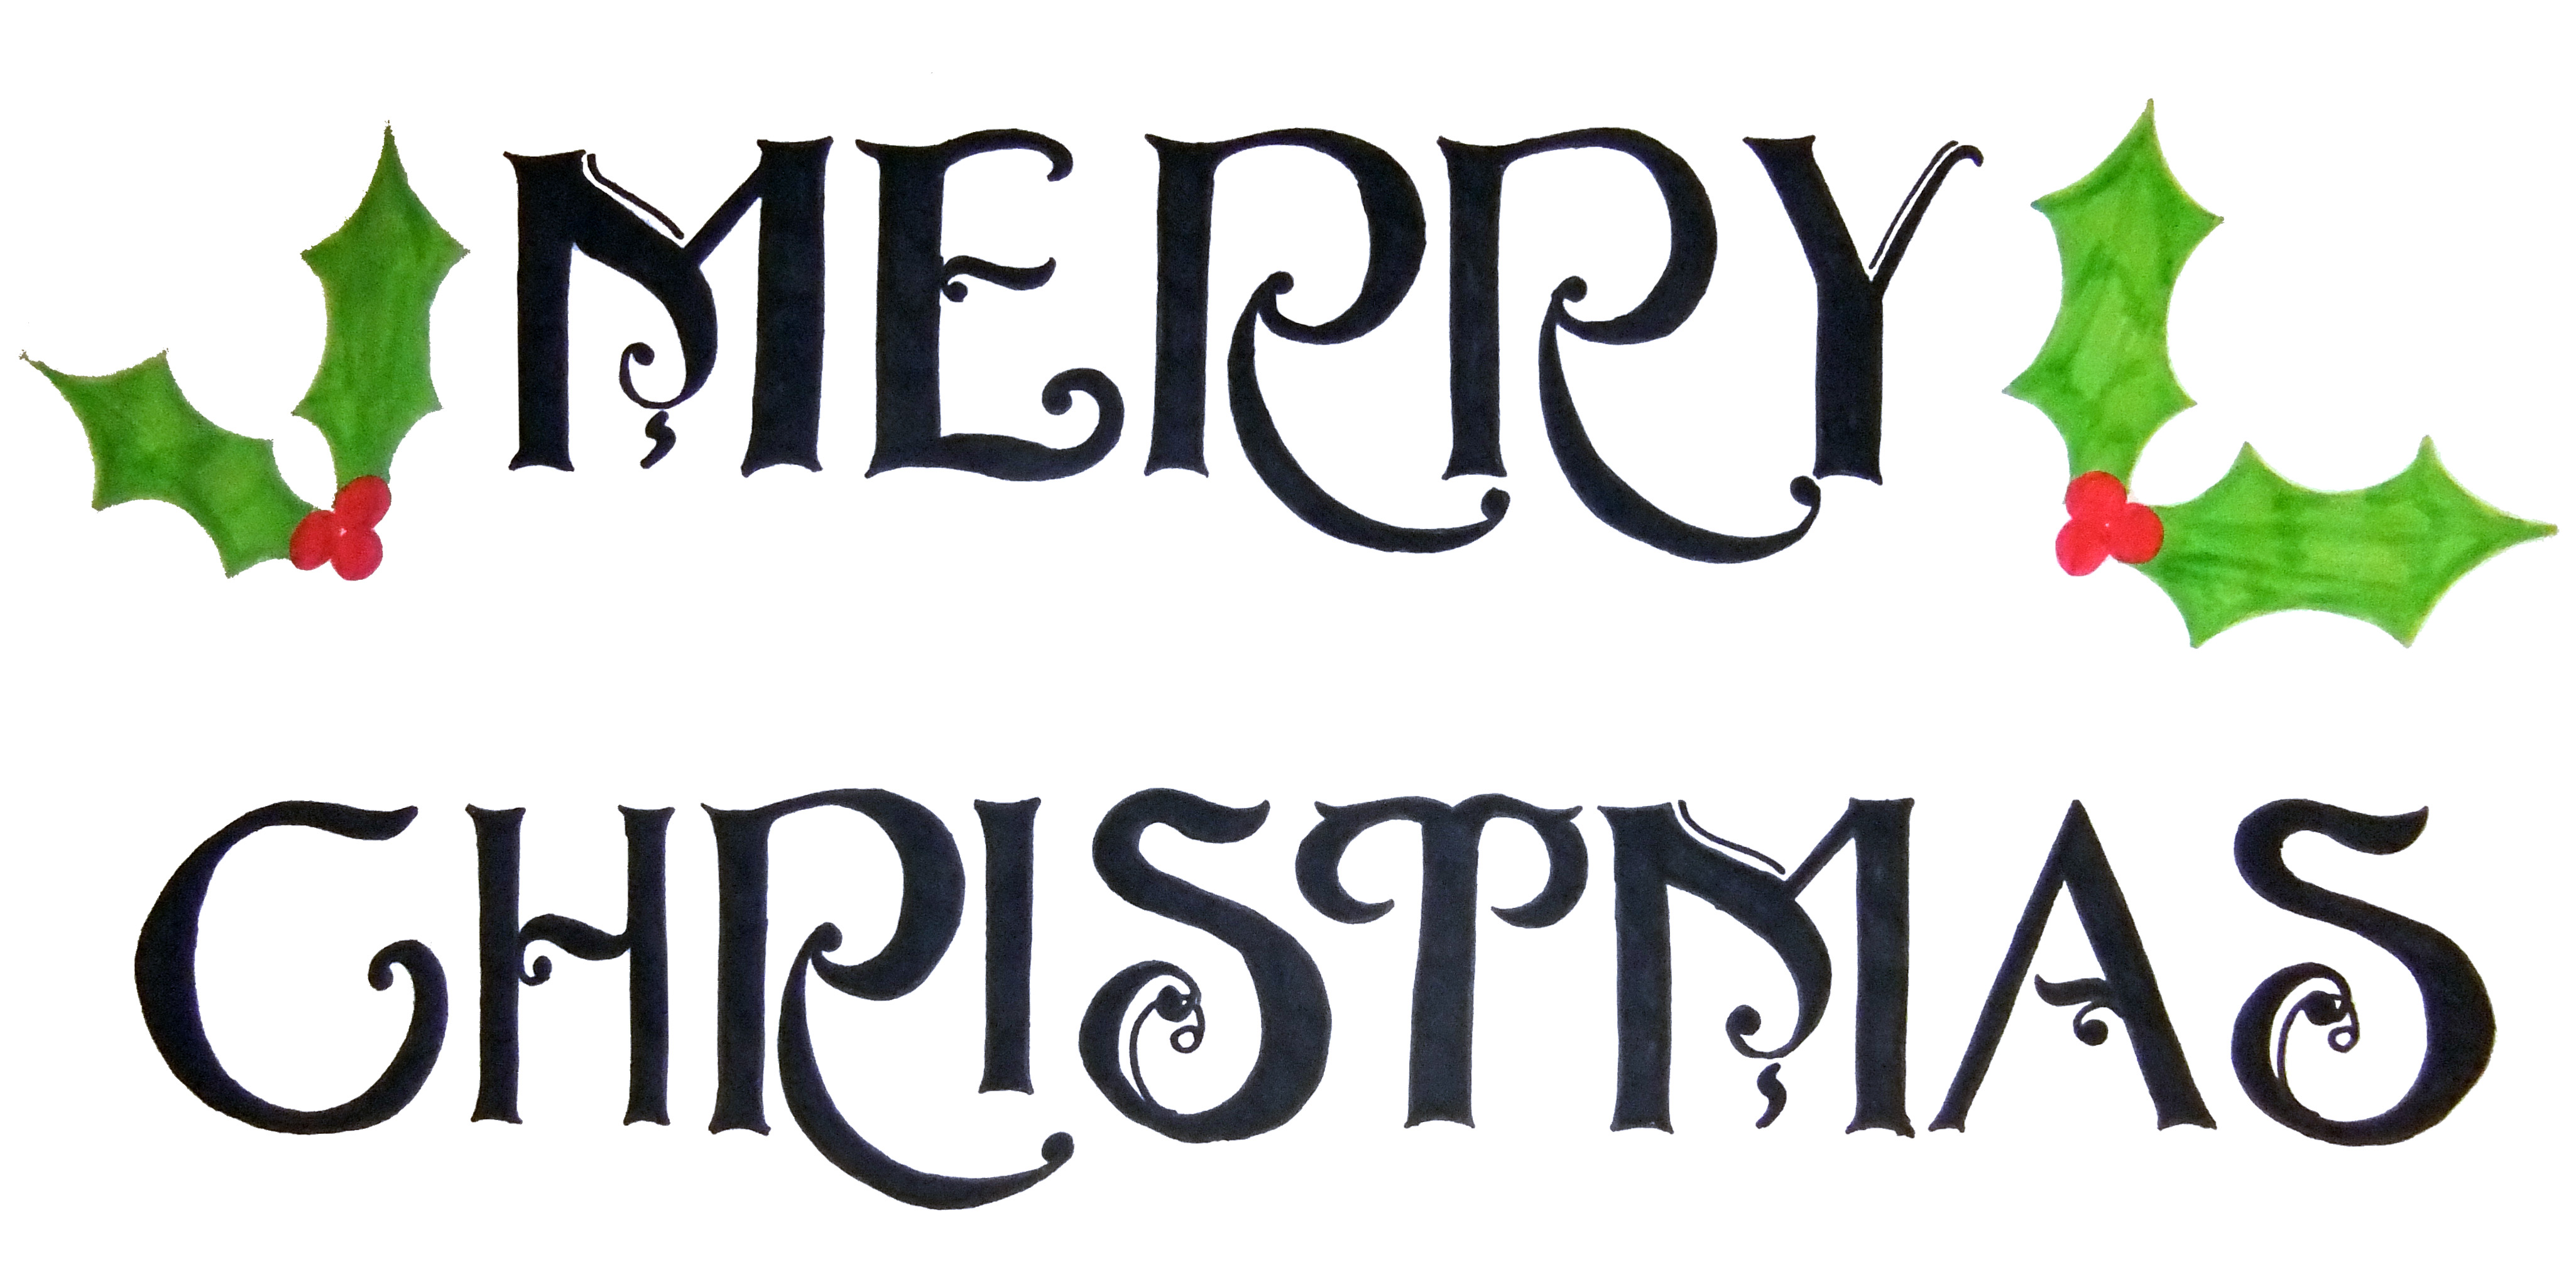 Merry Christmas Clipart Black And White | Free download on ...